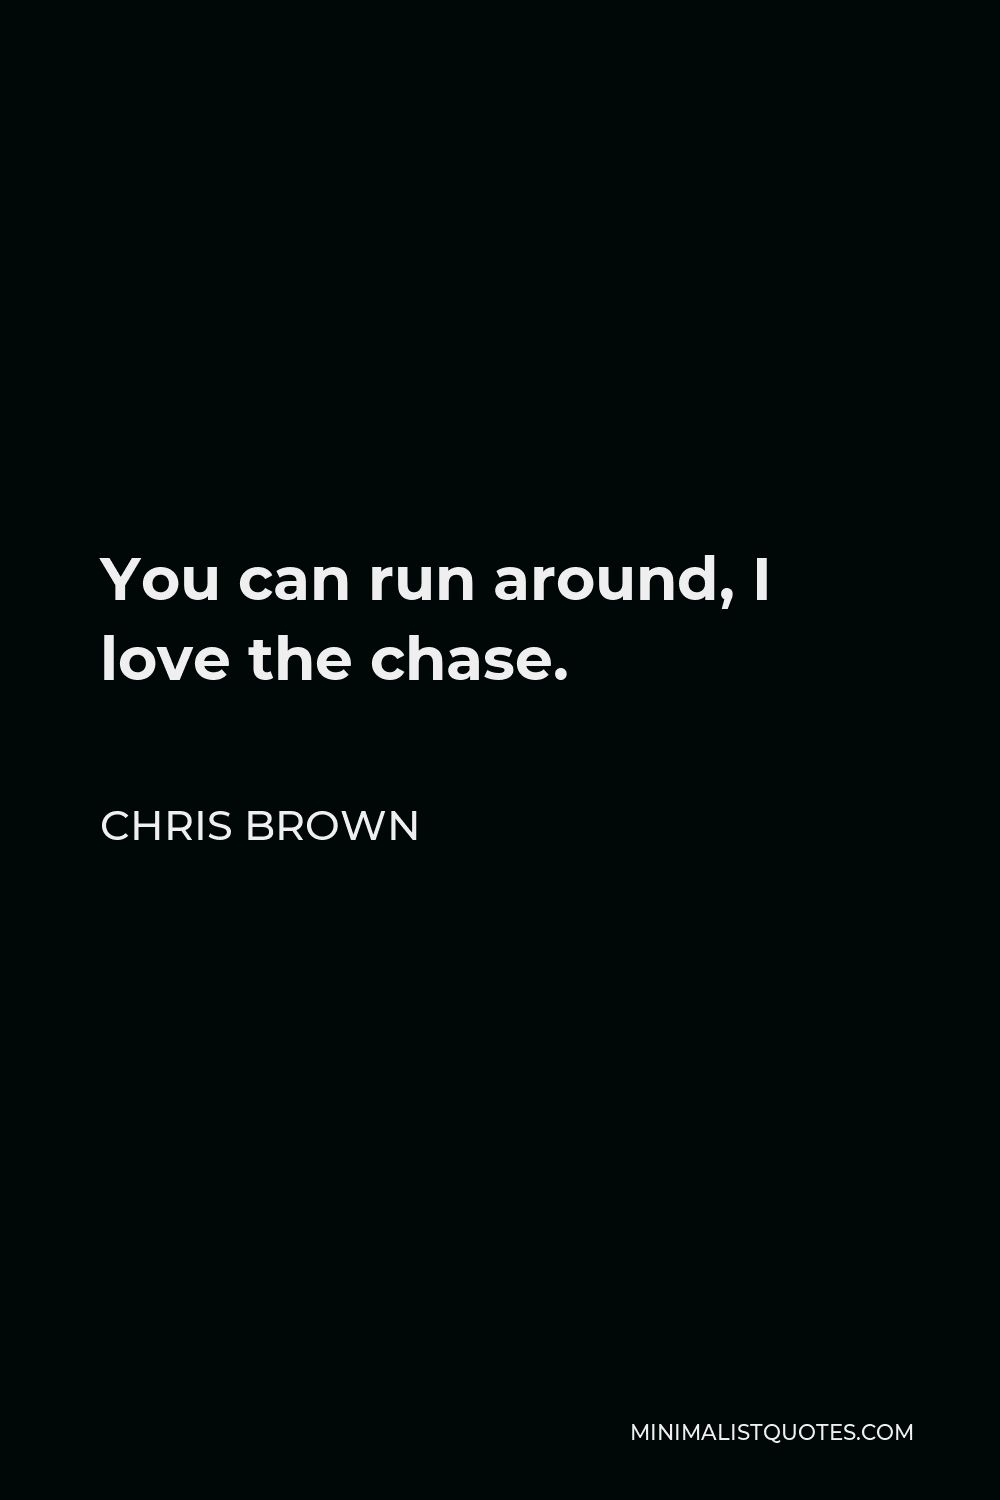 Chris Brown Quote - You can run around, I love the chase.